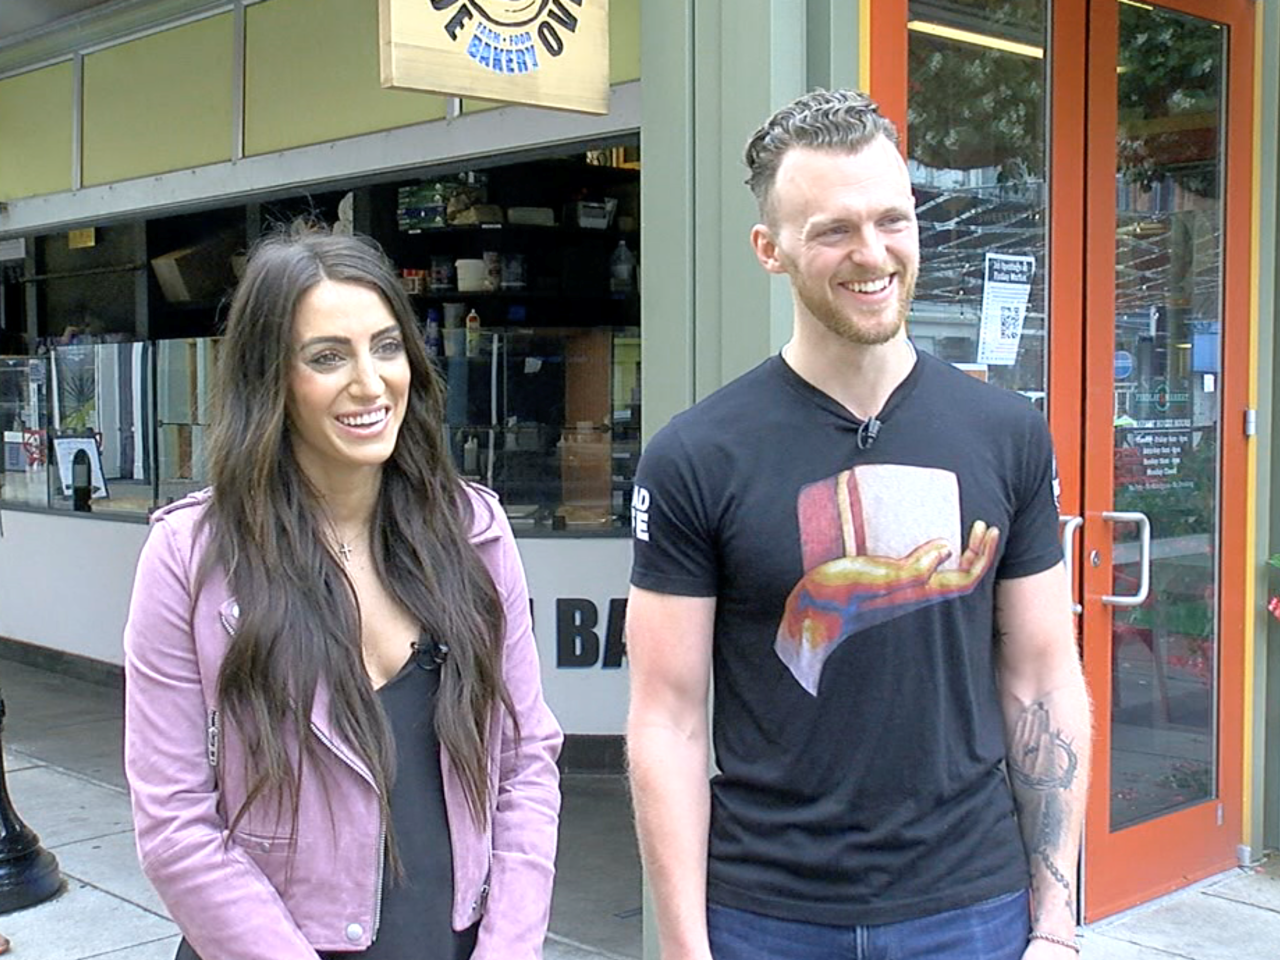 From left, Kristen and William Schumacher stand outside the Blue Oven Bakery location at Findlay Market. Kristen has long dark hair and is wearing a black top and pink jacket. William has short, brown hair and a beard and mustache. He is wearing a black t-shirt and jeans.